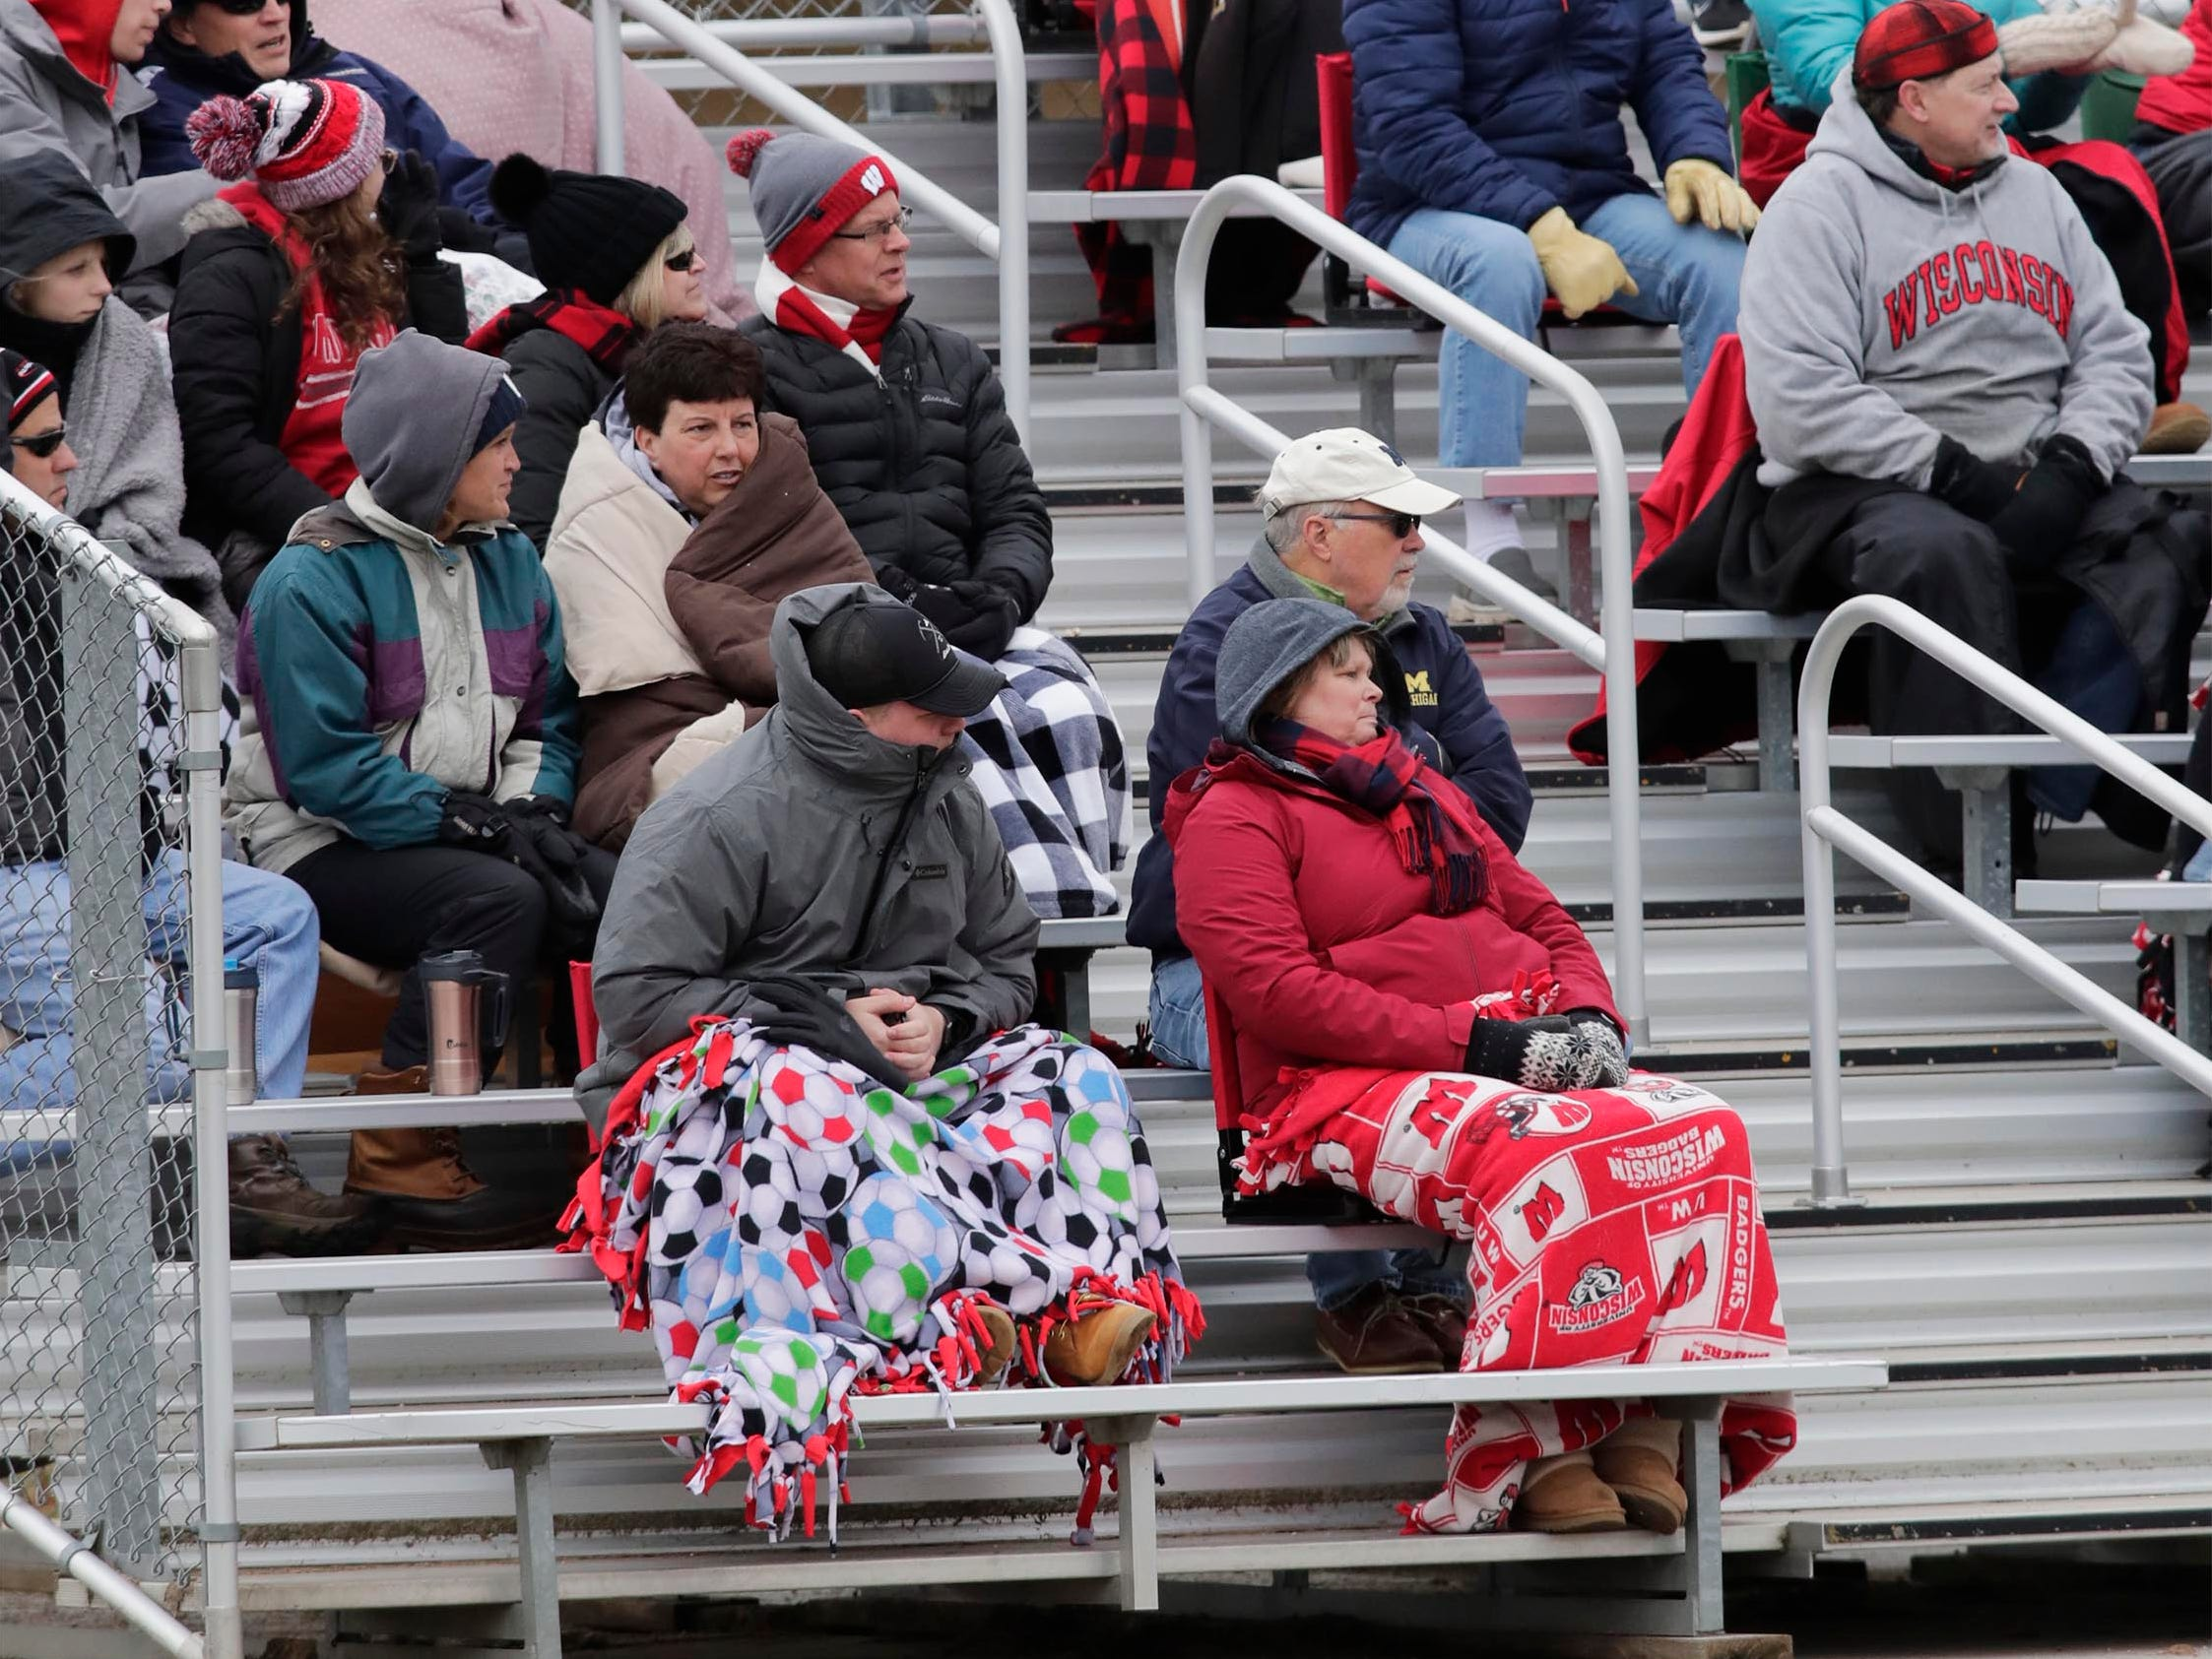 Fans watch Kimberly at Plymouth action bundled in the stands, Saturday, April 13, 2019, in Plymouth, Wis.